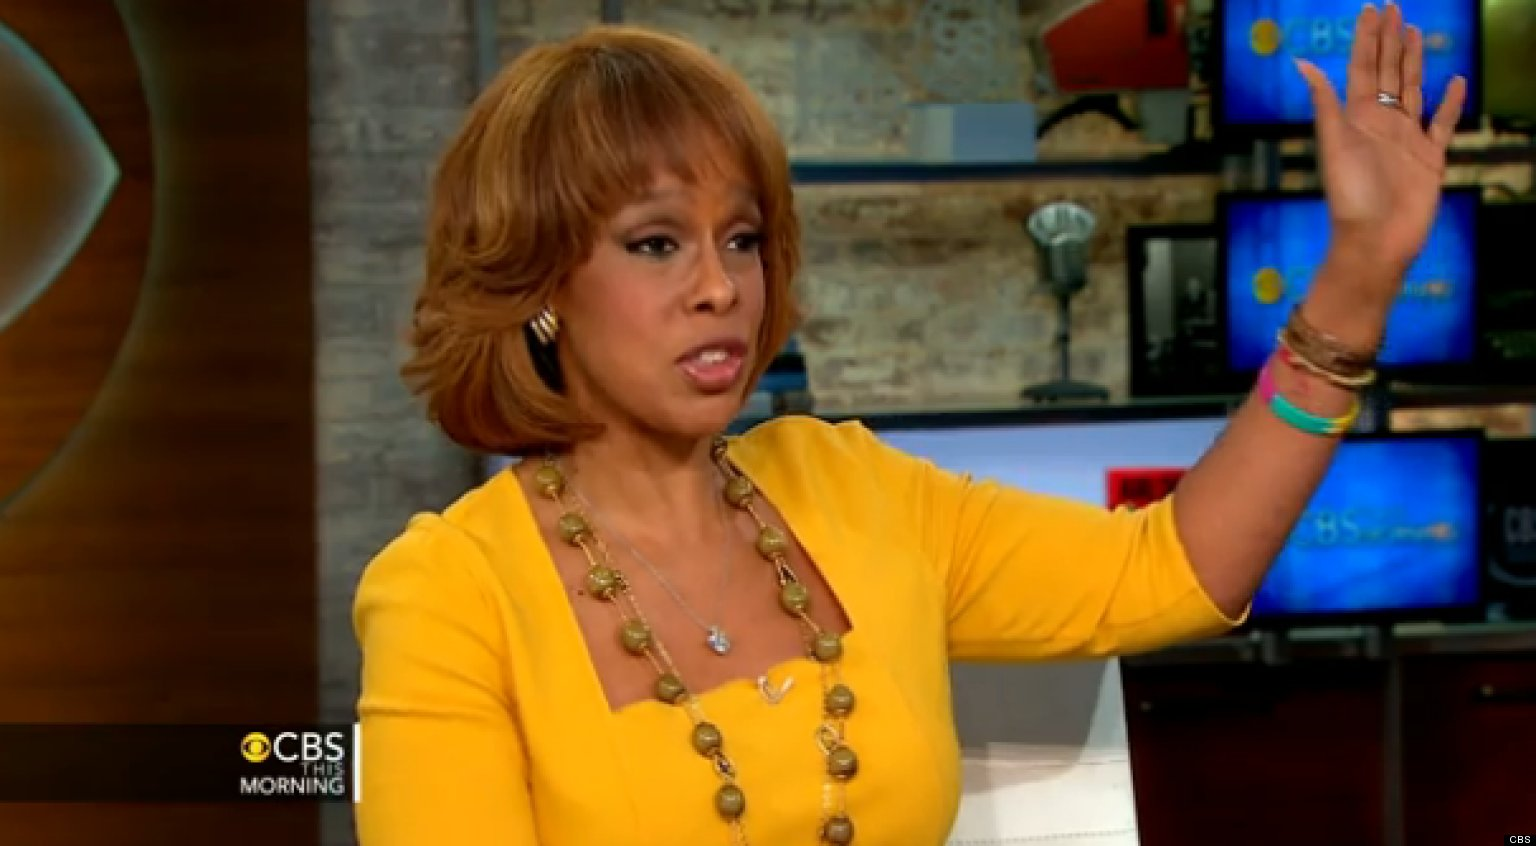 Erotic author recommended by gayle king